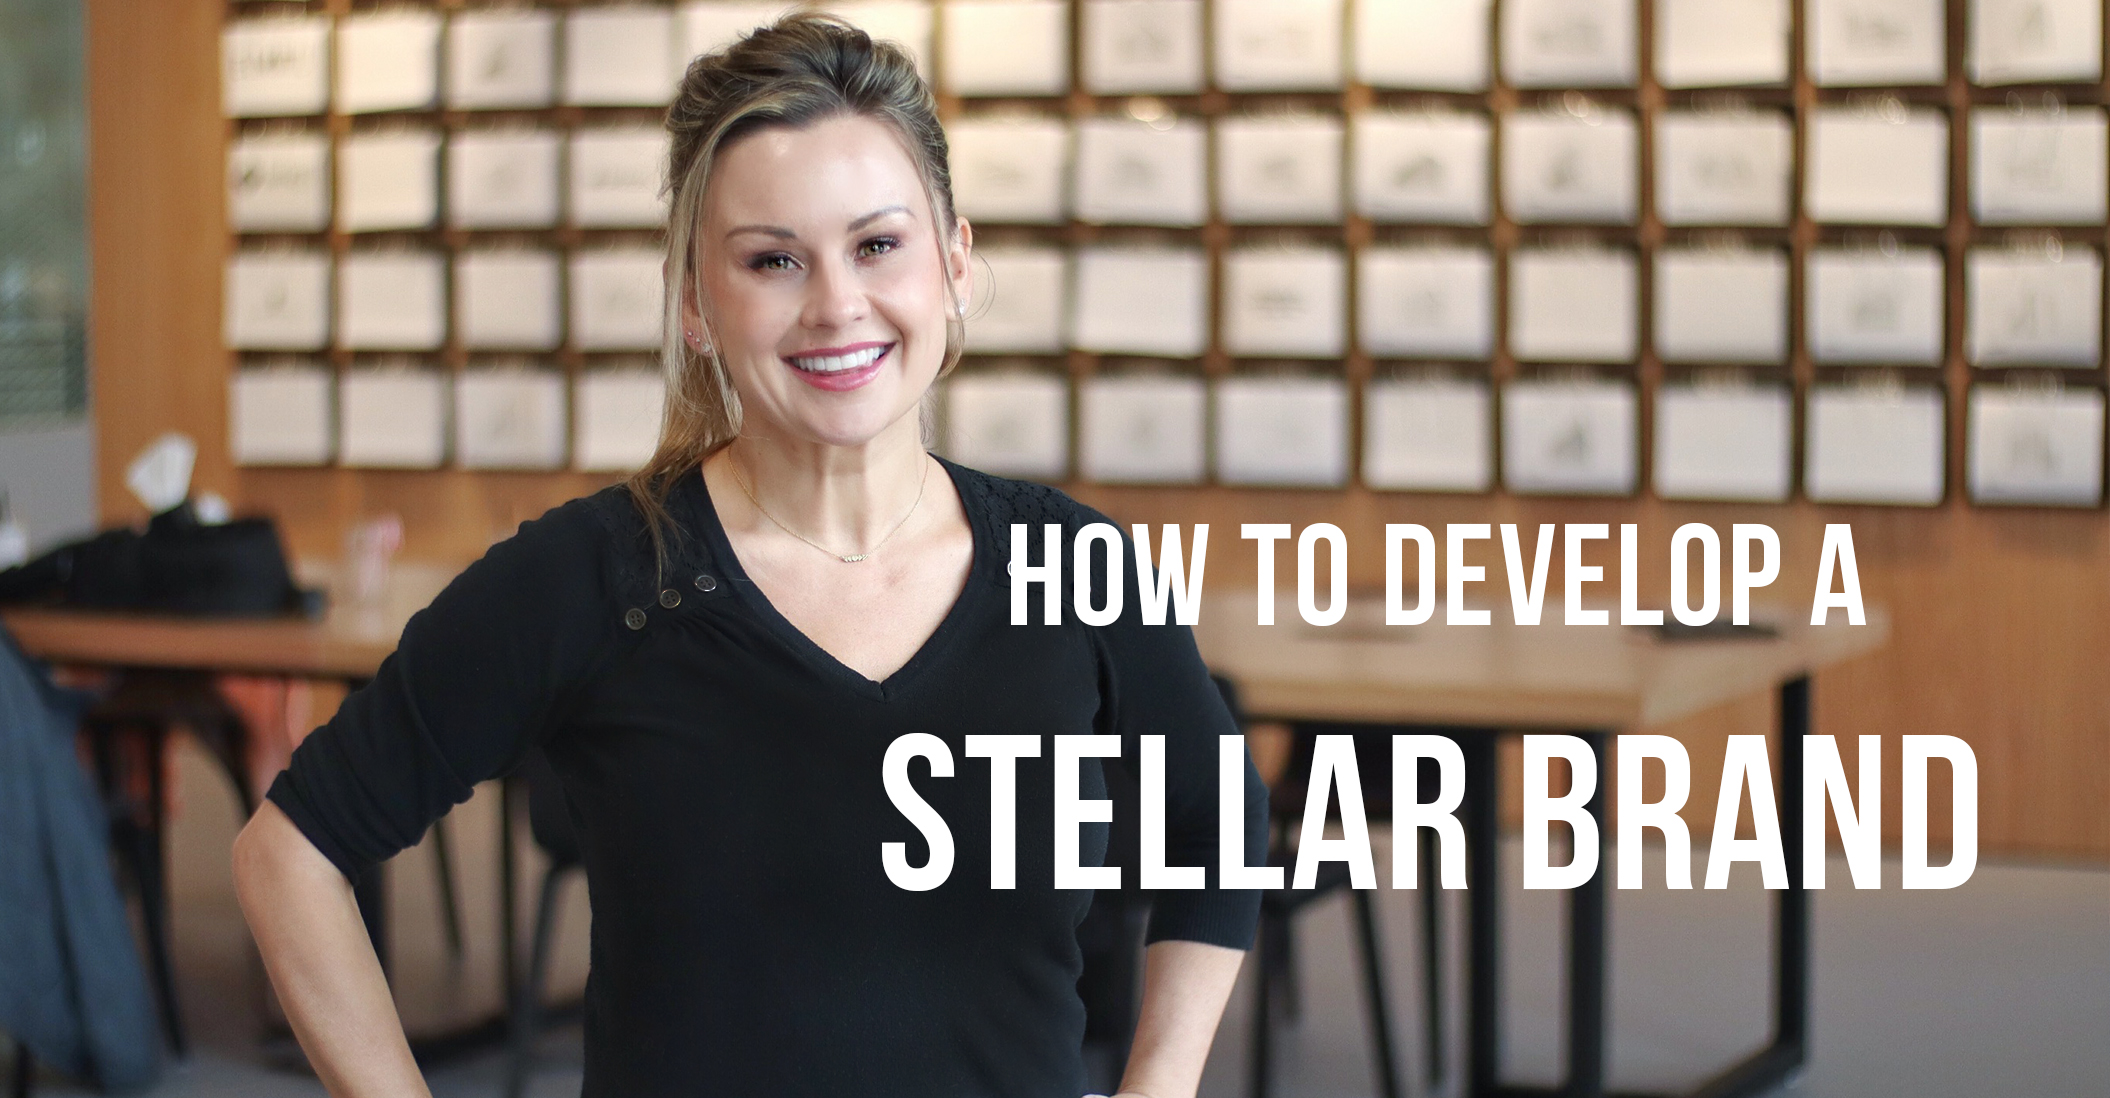 HOW TO DEVELOP A STELLAR BRAND